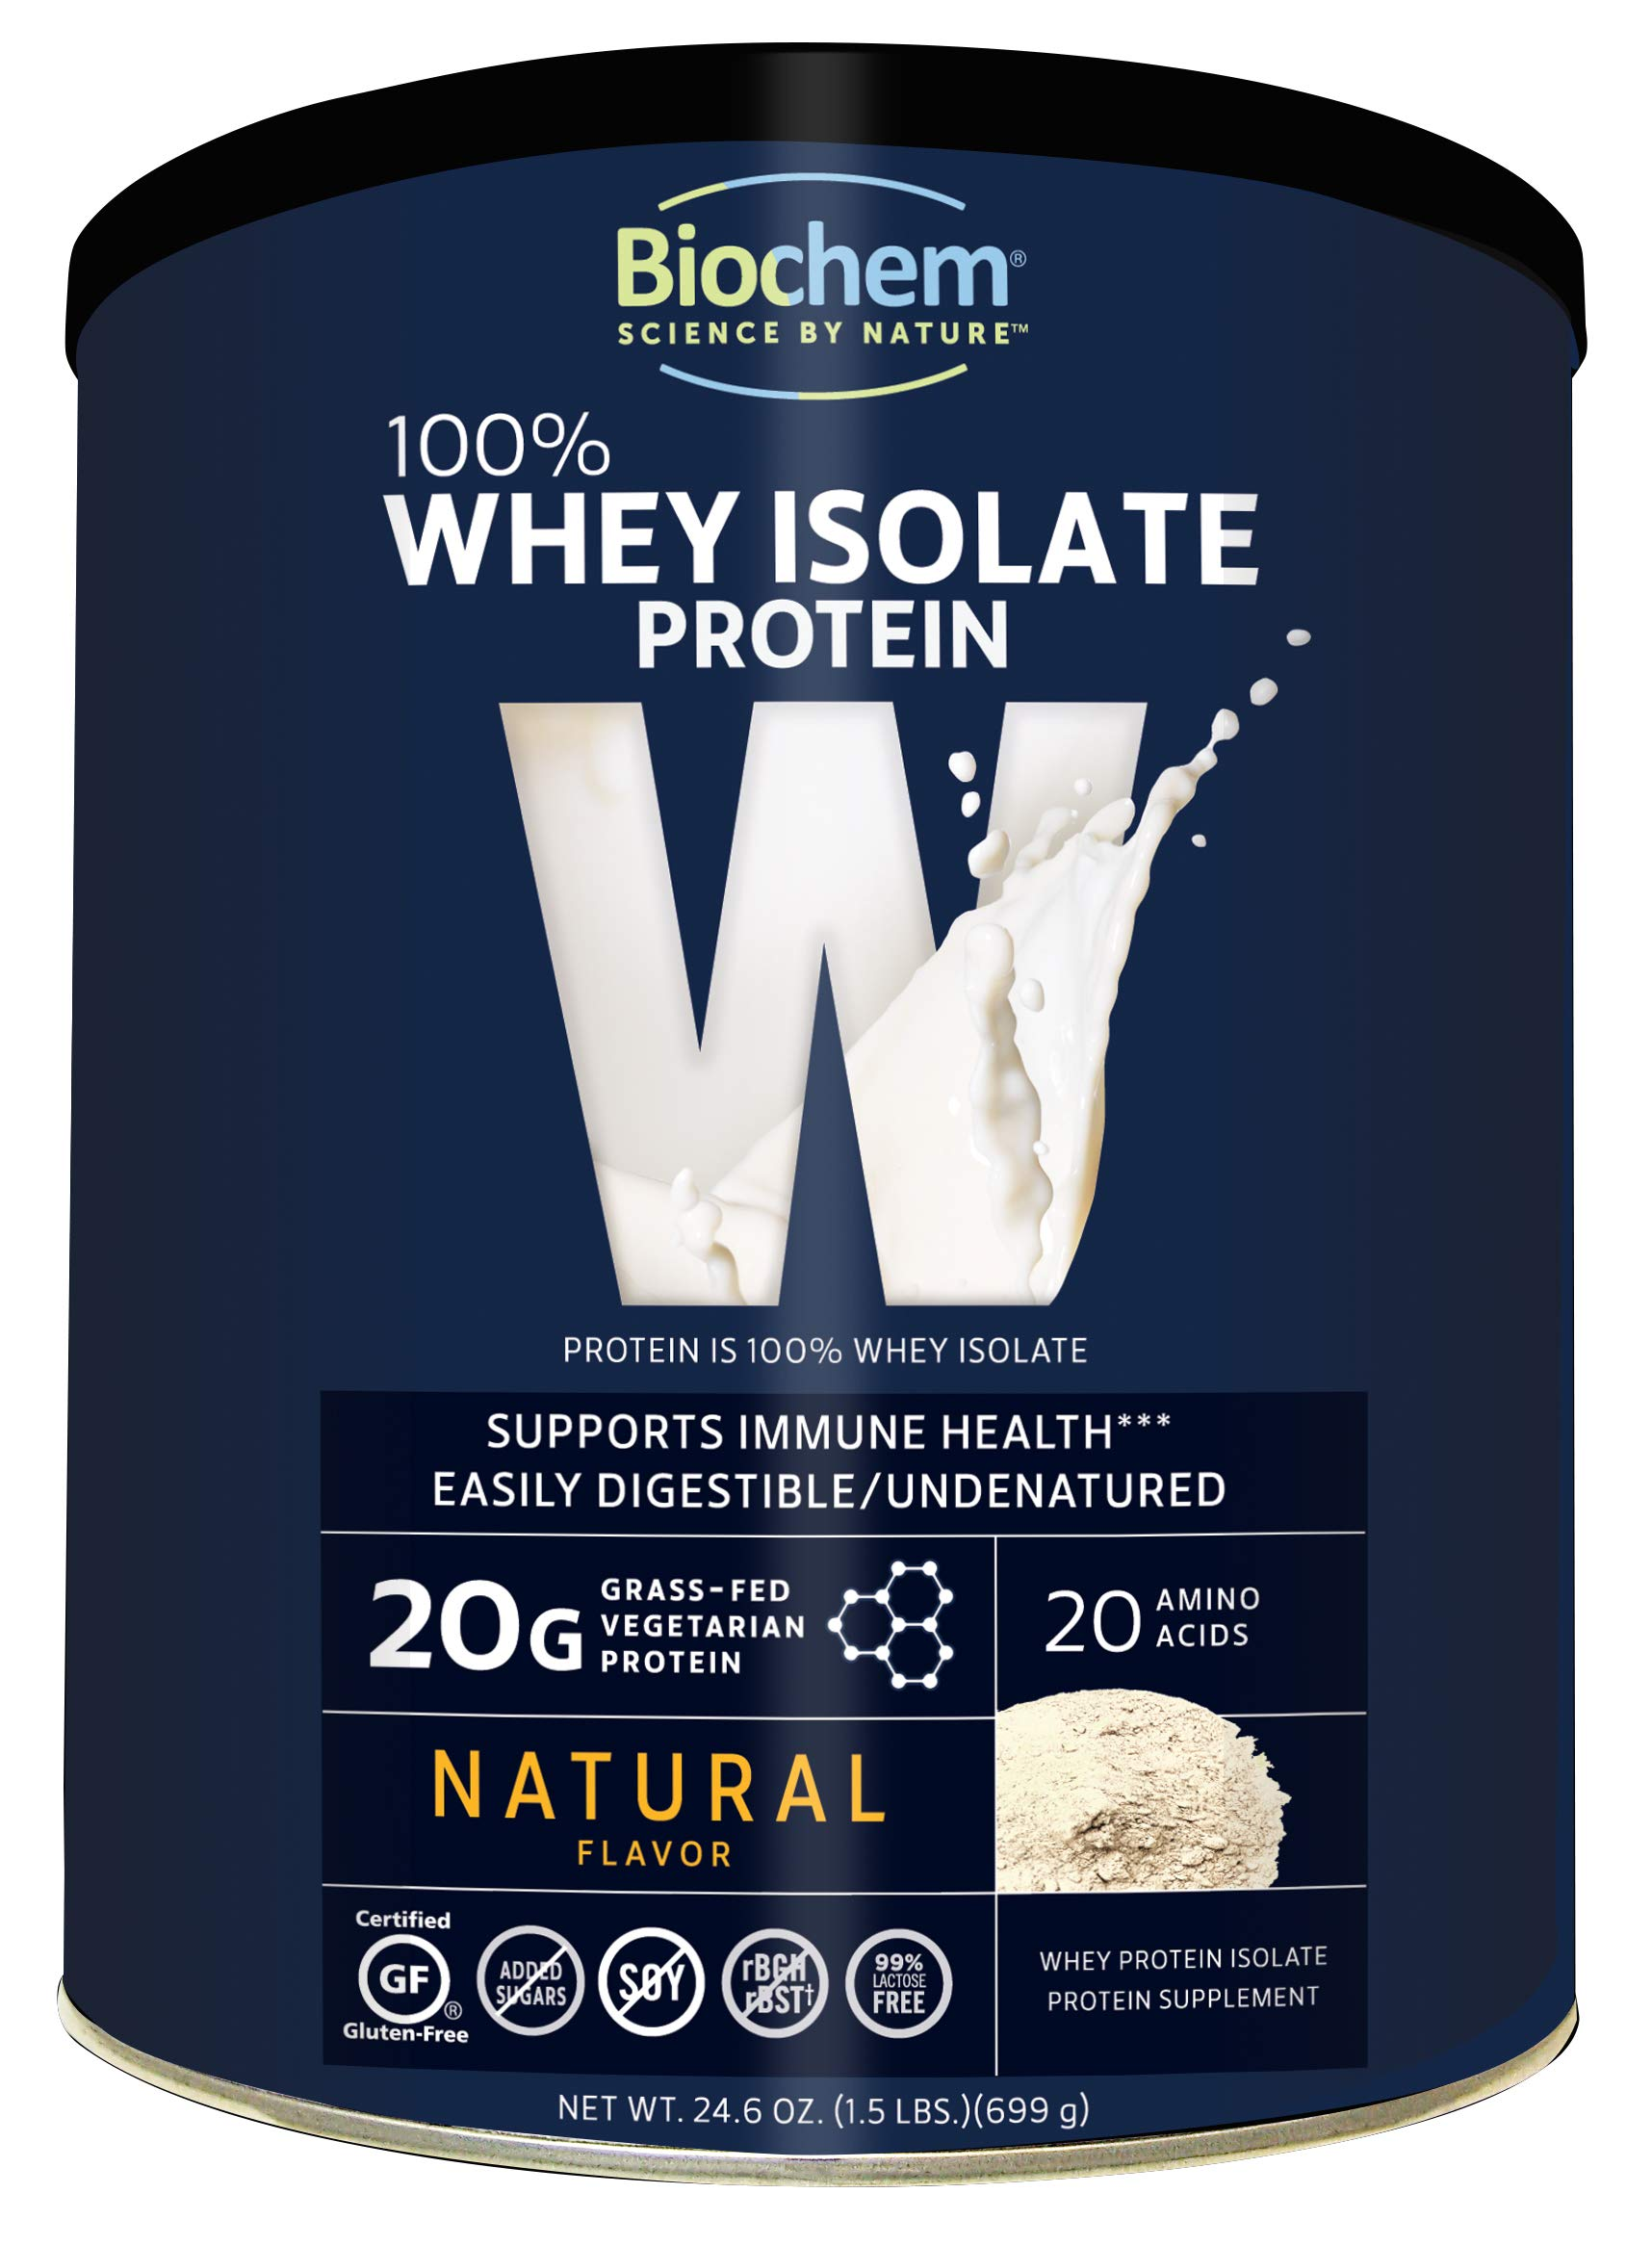 Biochem 100% Whey Isolate Protein - Natural Flavor - 24.6 Ounce - 20g Vegetarian Protein - May Help Support Immune Health - Keto Friendly & Easily Digestible - Refreshing Taste by Biochem